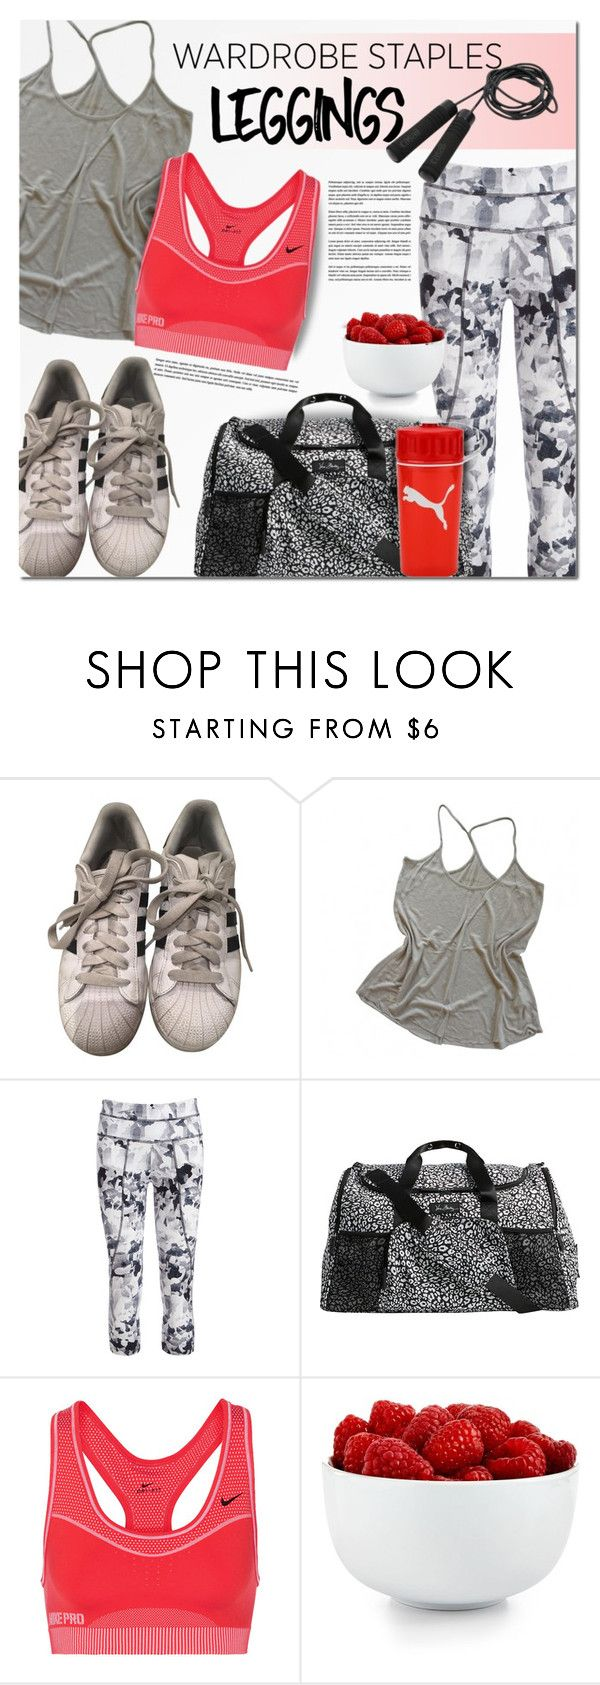 """""""Wardrobe Staples: Leggings"""" by barbarela11 ❤ liked on Polyvore featuring adidas, Zadig & Voltaire, Varley, Vera Bradley, NIKE, Casall and The Cellar"""